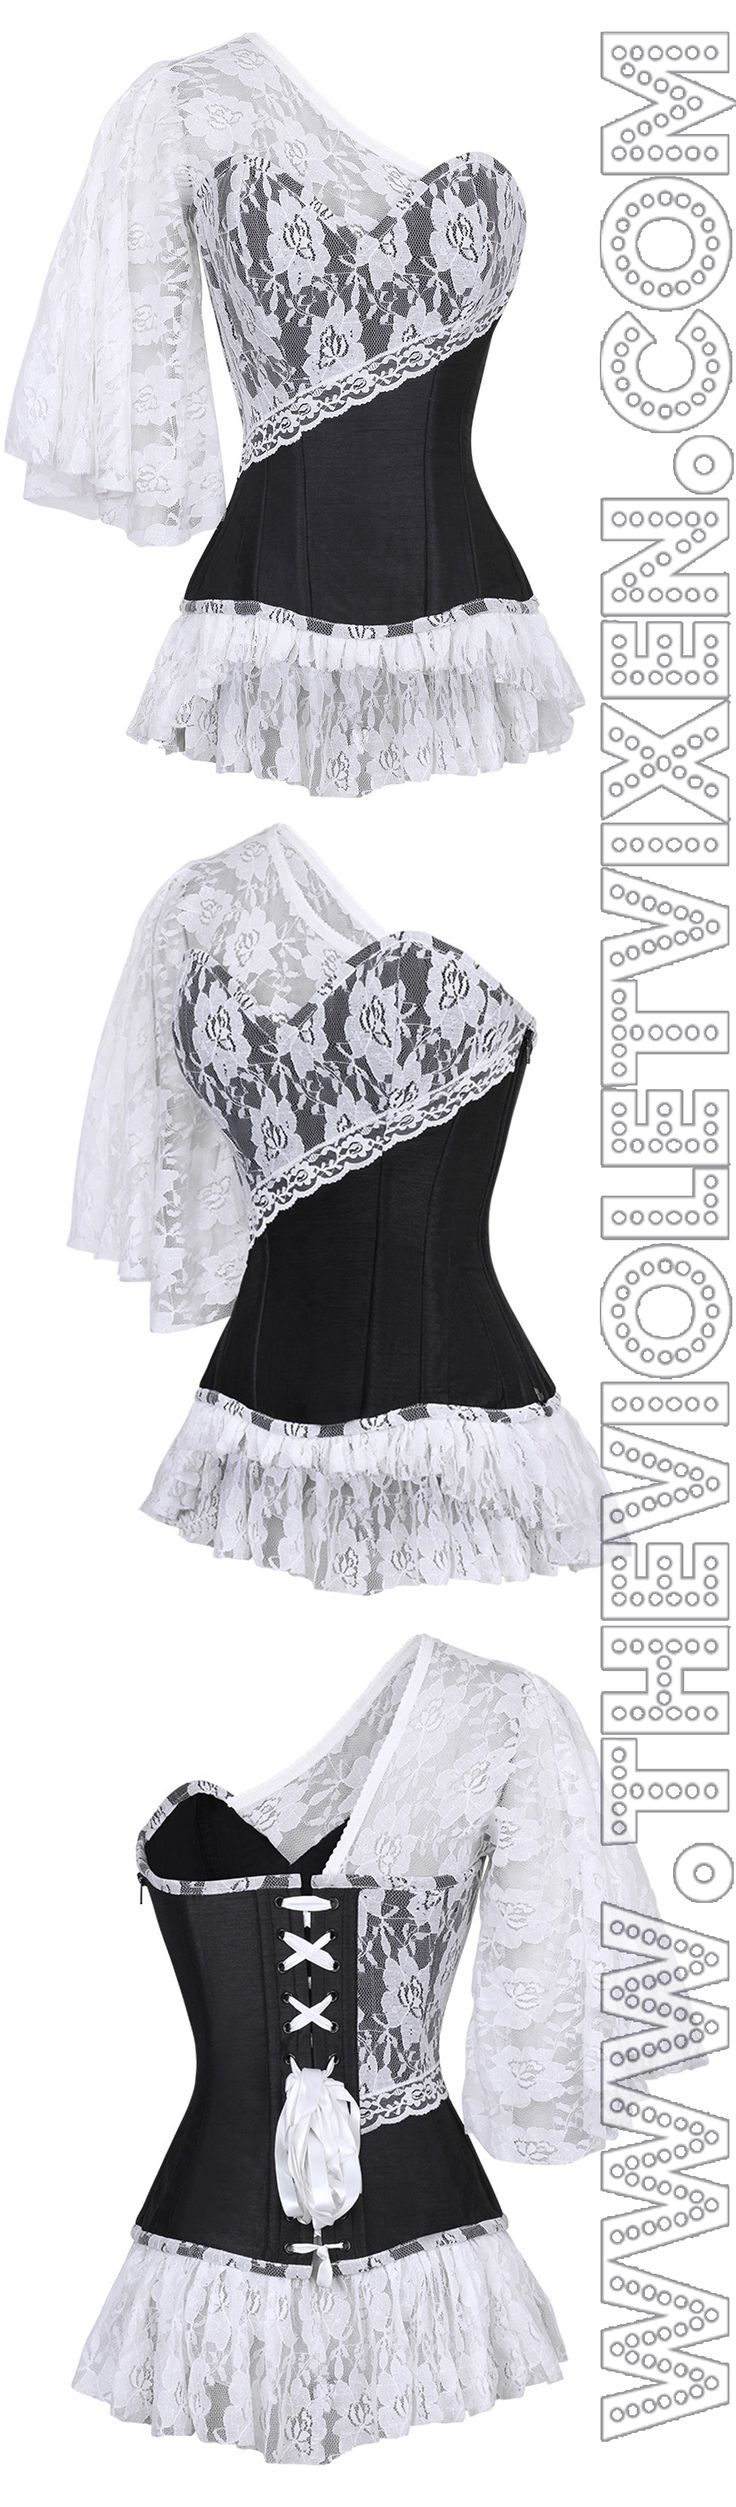 Laced Cloud Black Steel Boned Corset - http://thevioletvixen.com/corsets/laced-cloud-black-corset/